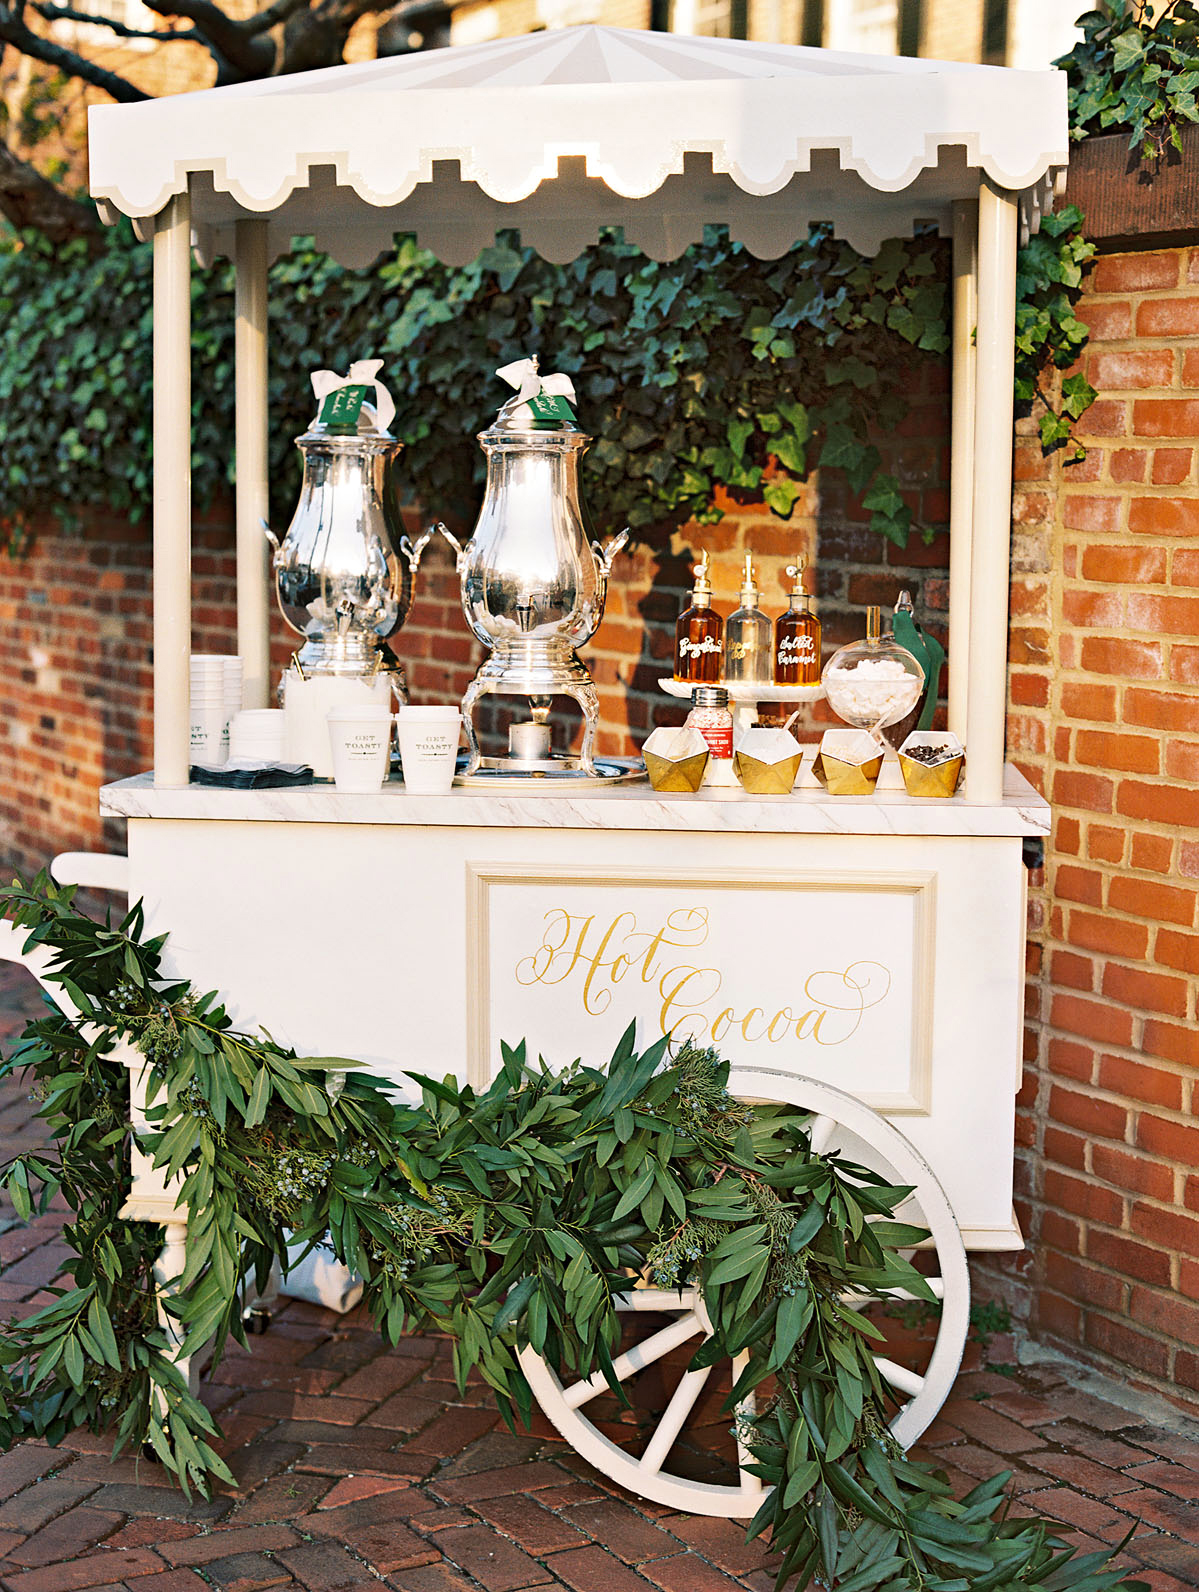 celina rob wedding virginia hot chocolate cart